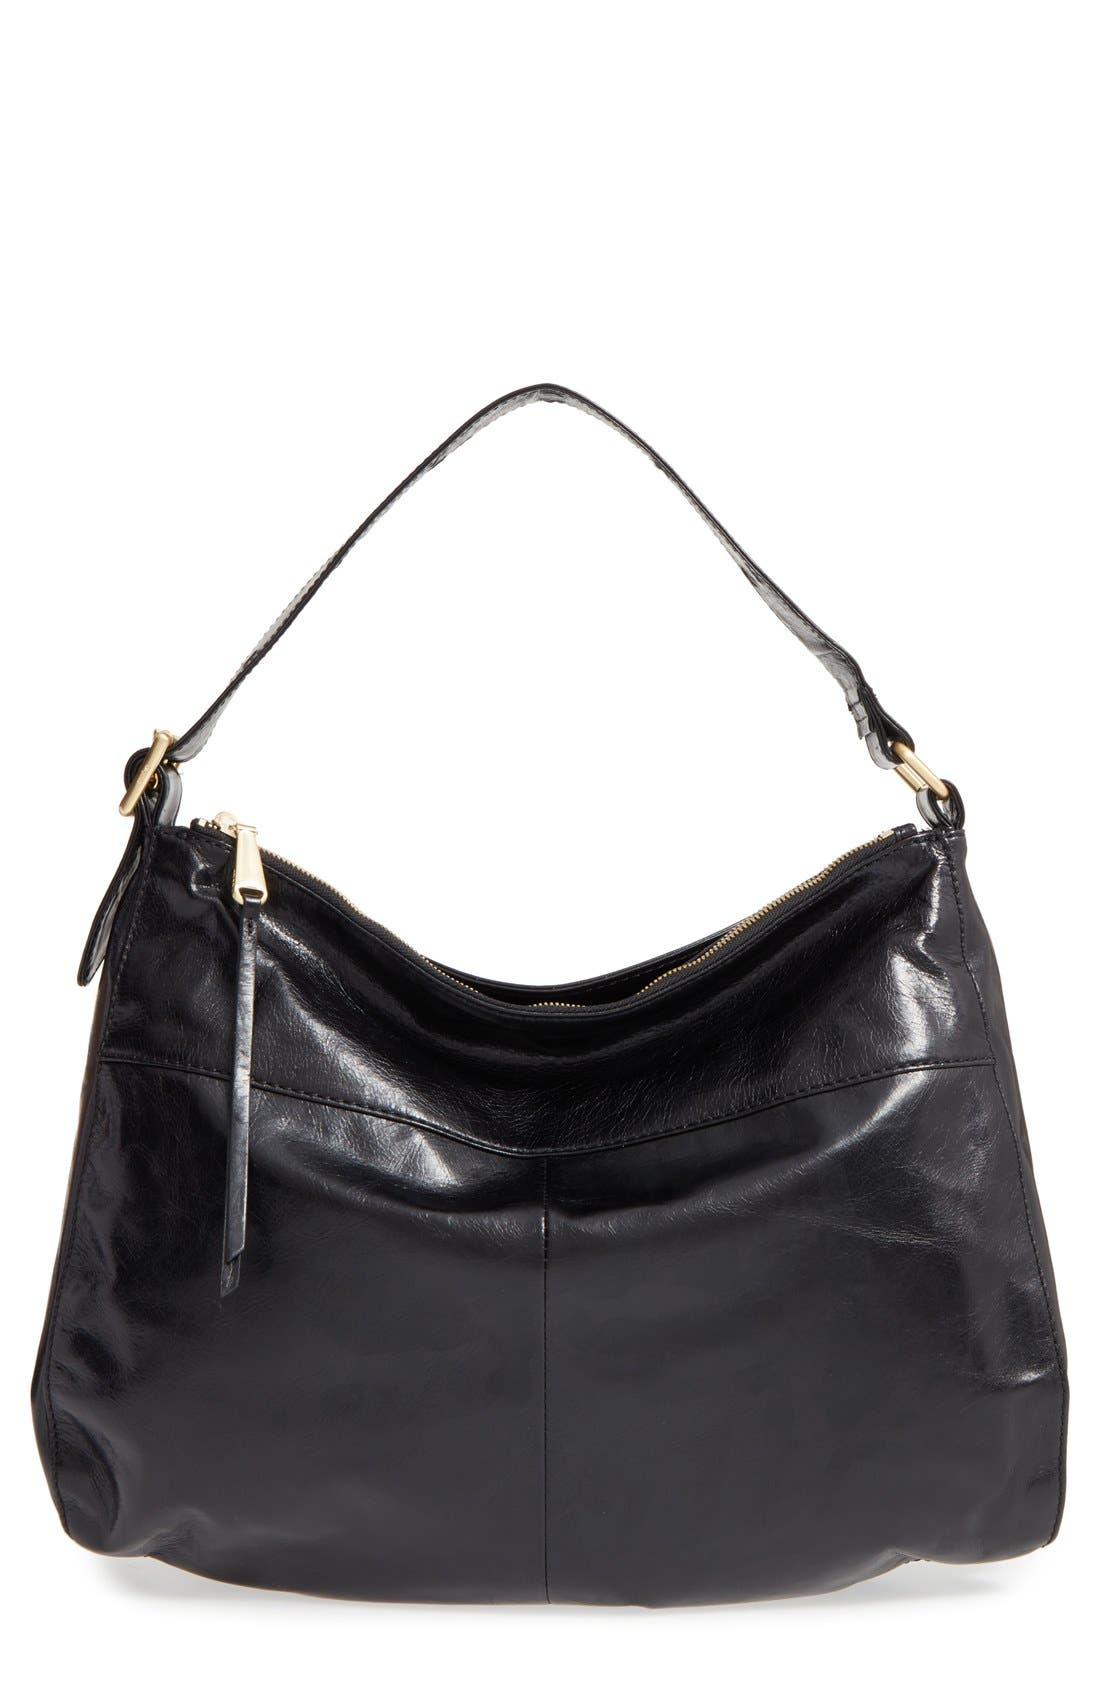 'Quincy' Leather Hobo,                             Main thumbnail 1, color,                             001